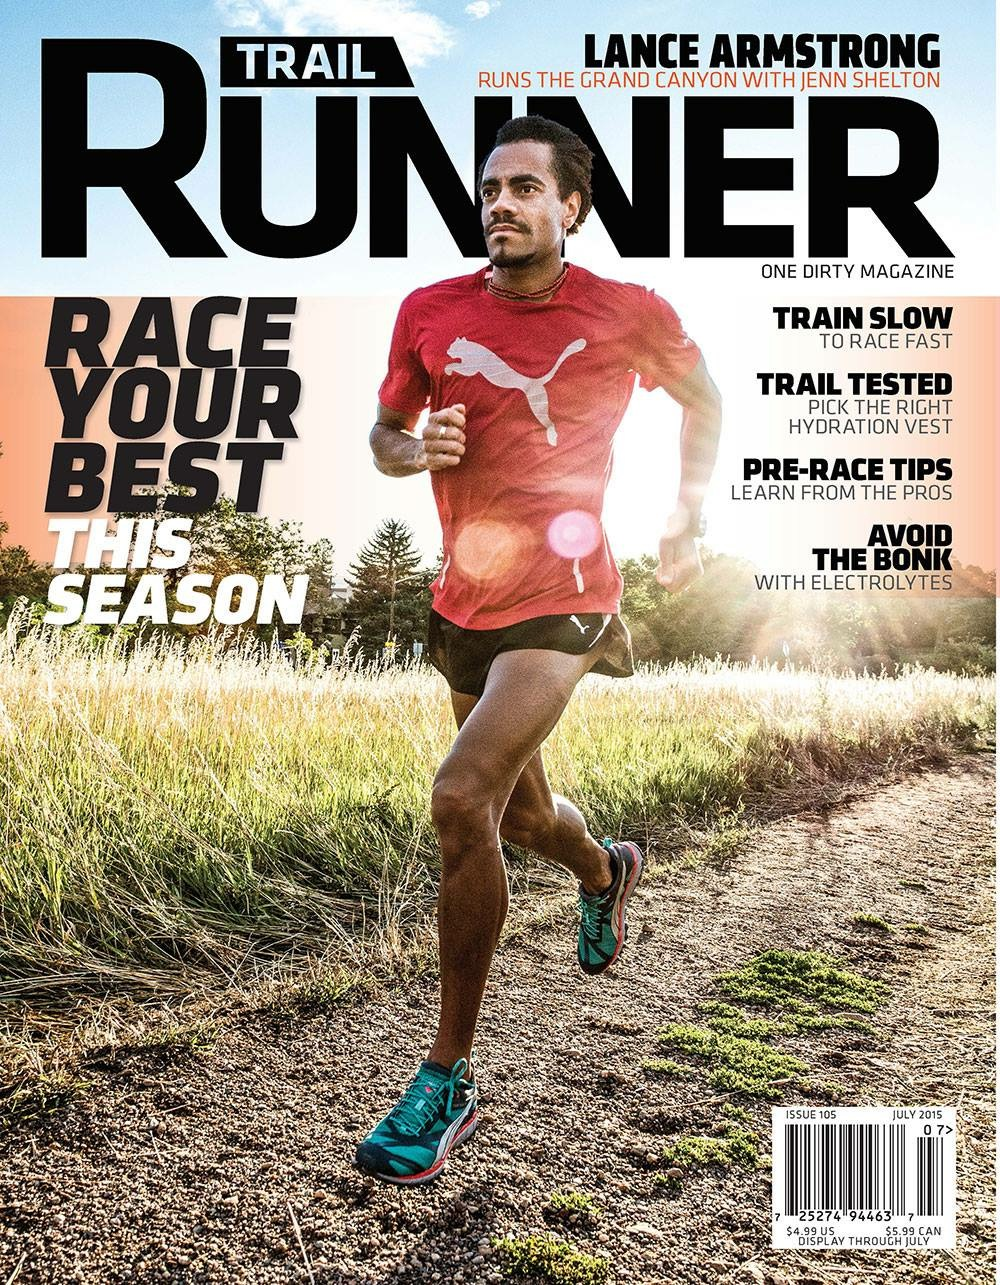 July 2015 Issue of: Trail Runner Mag